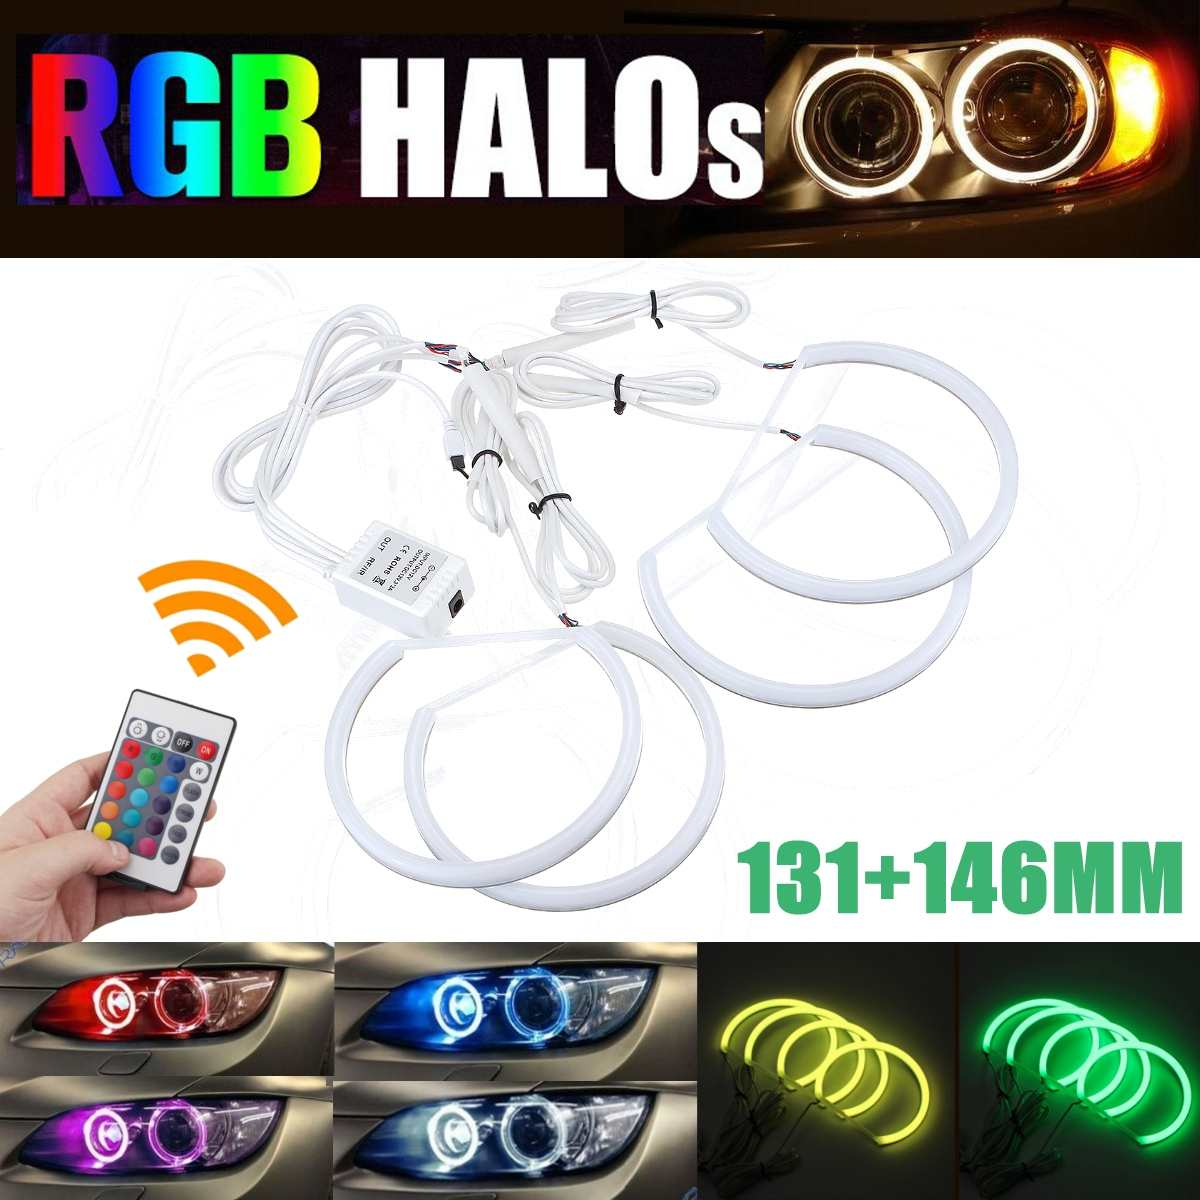 RGB Angel eyes Remote control 2*131mm&2*146mm Cotton halo ring kit for BMW E46 A+B Non projector 4D 16colors flash